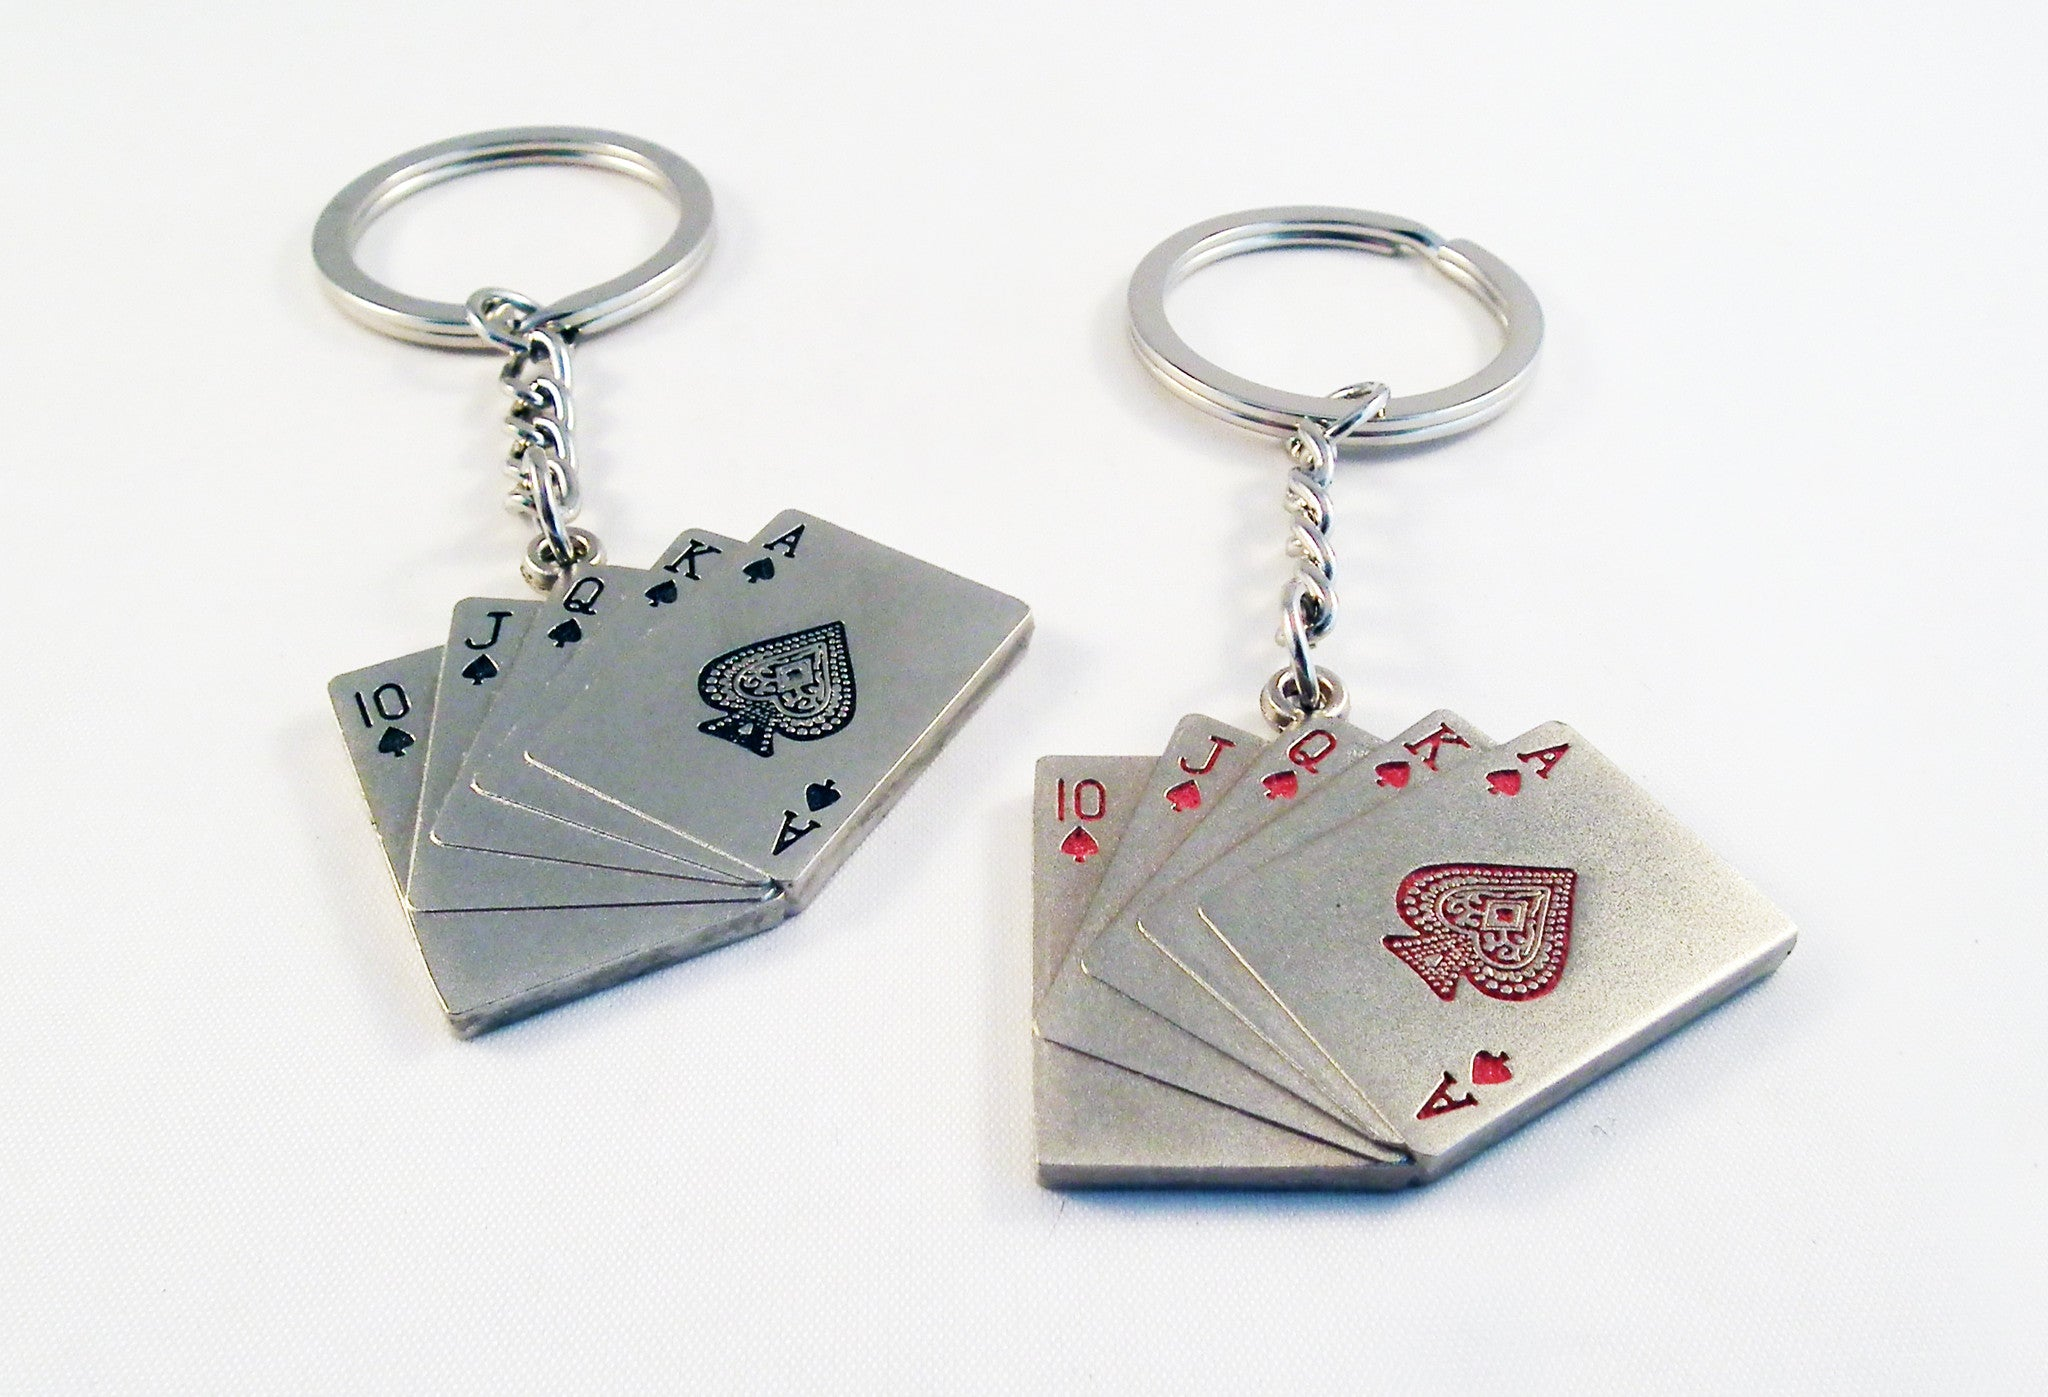 Porte-Clés en Acier Royale Flush / Royal Flush Steel Keychain - No Mercy Making